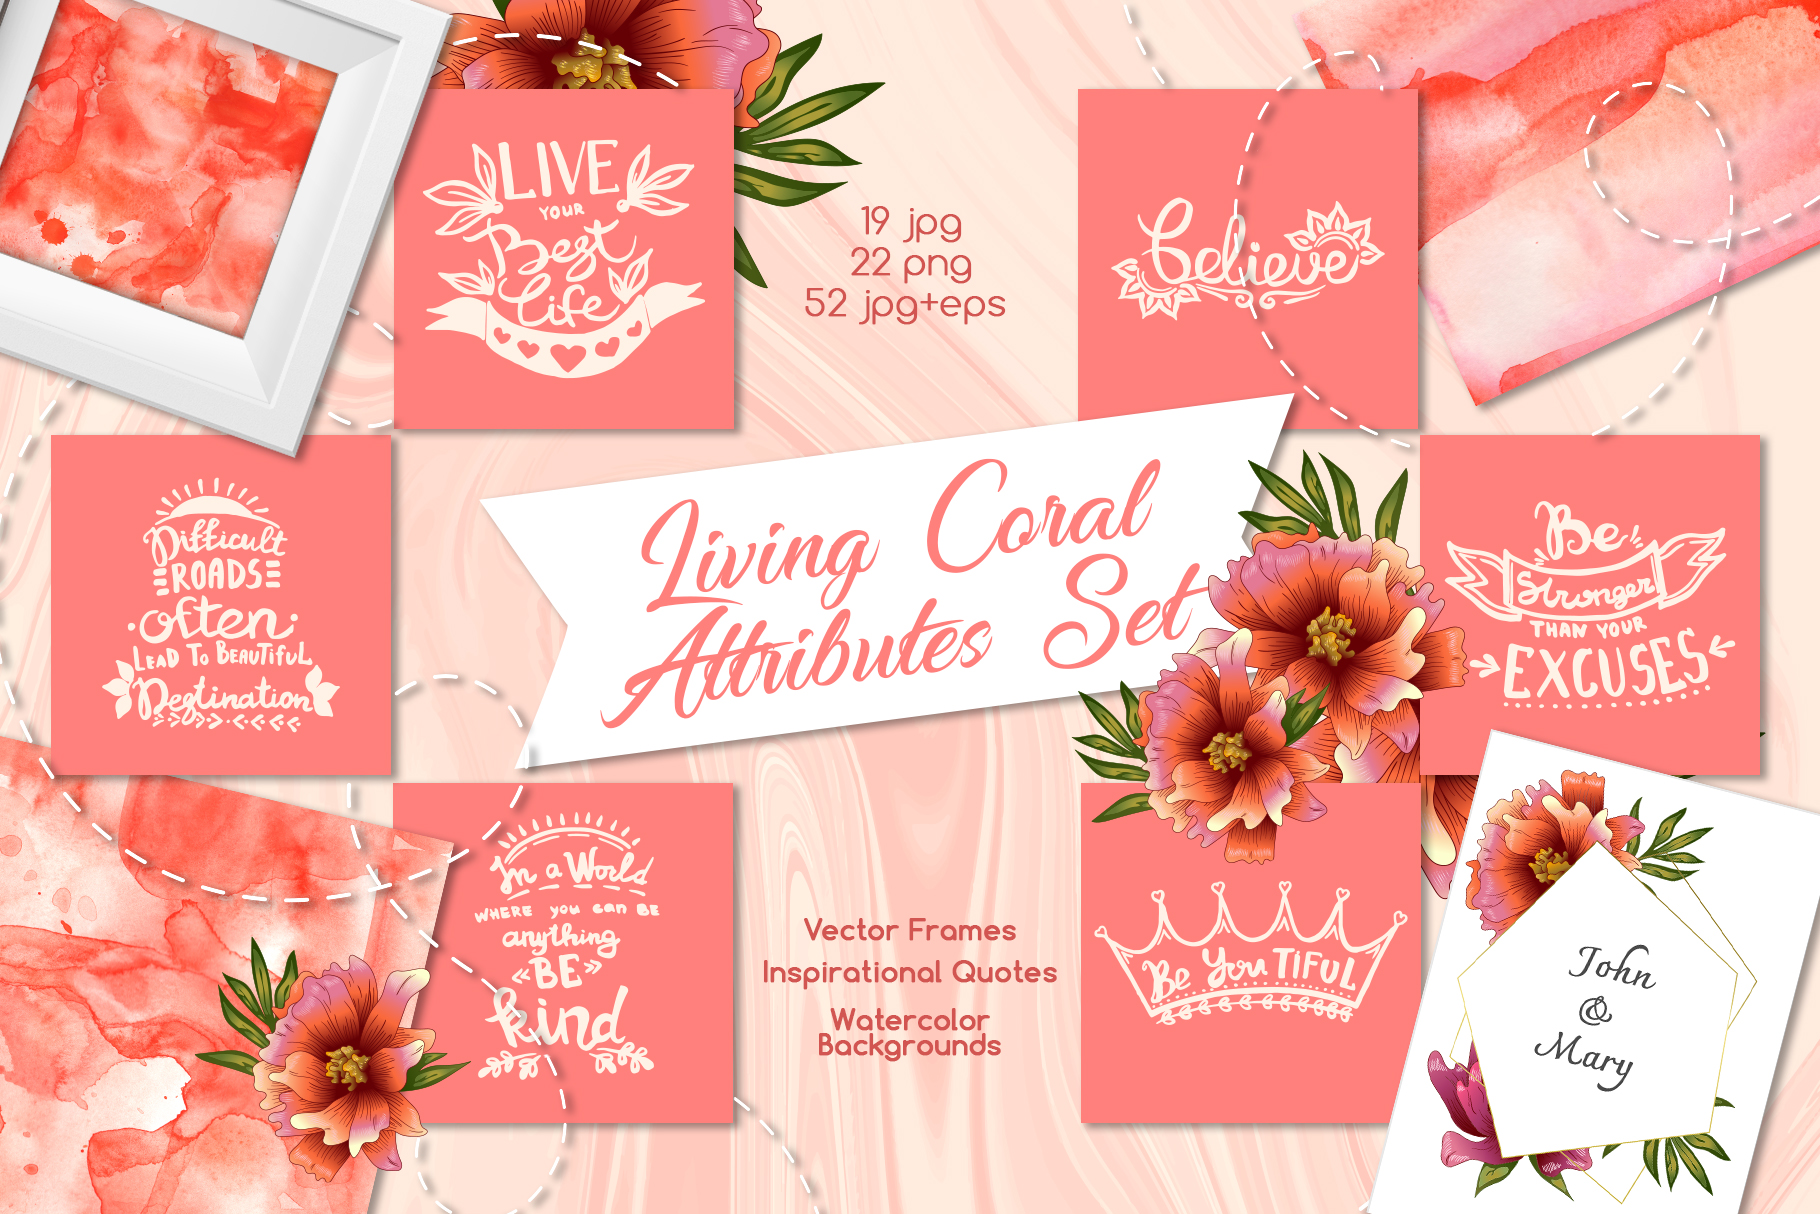 Living coral attributes set Watercolor png example image 1